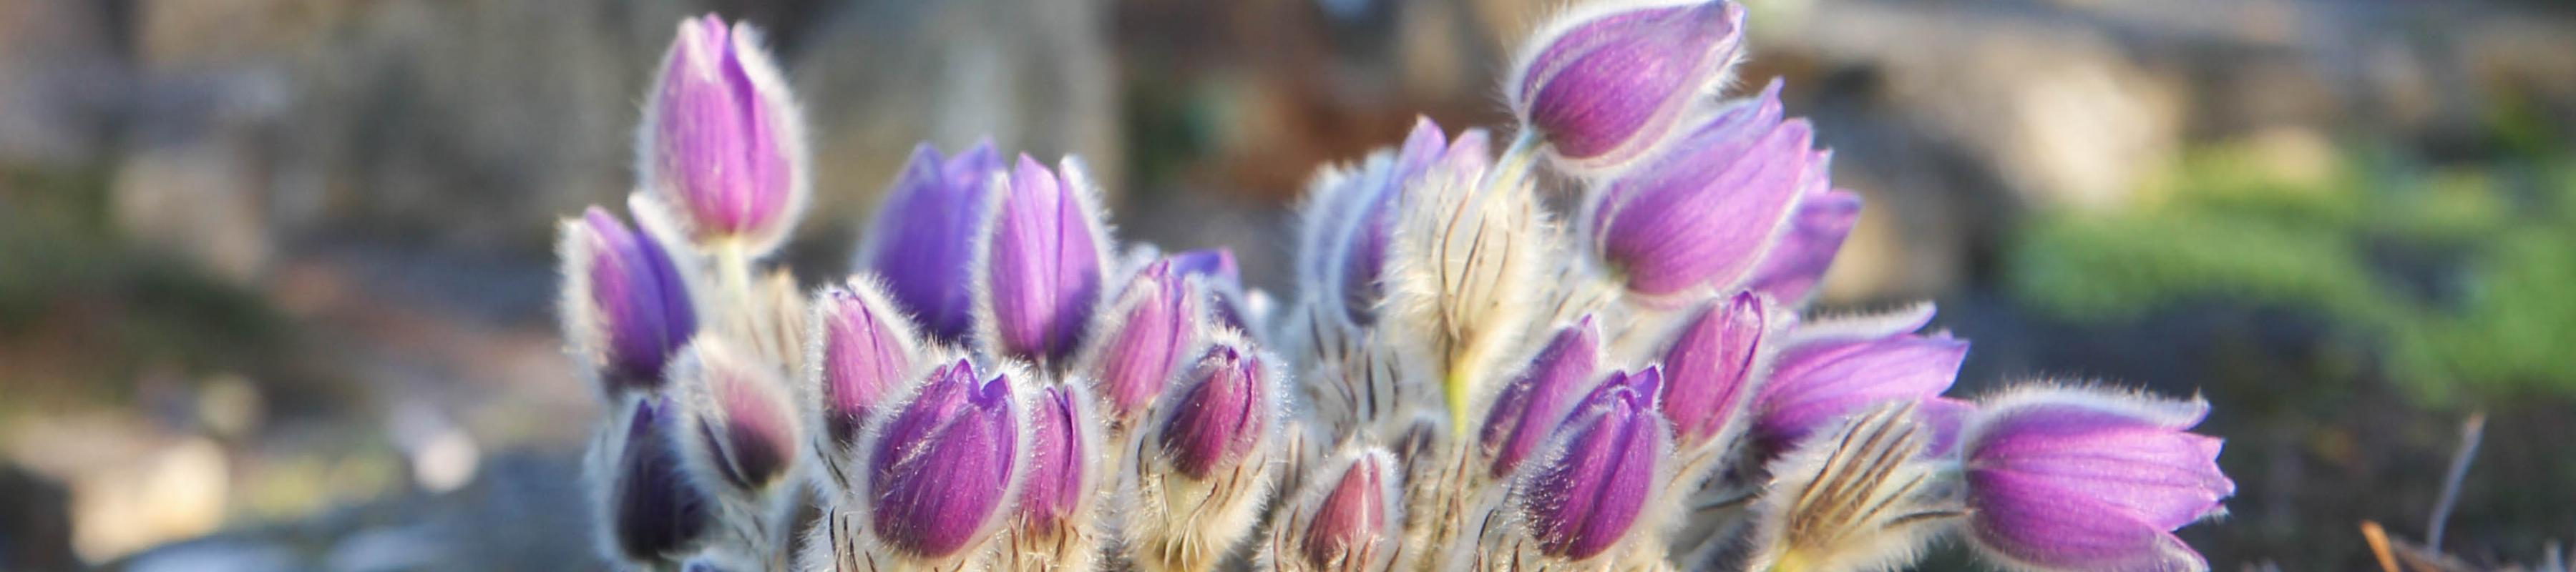 Pulsatilla or pasqueflower